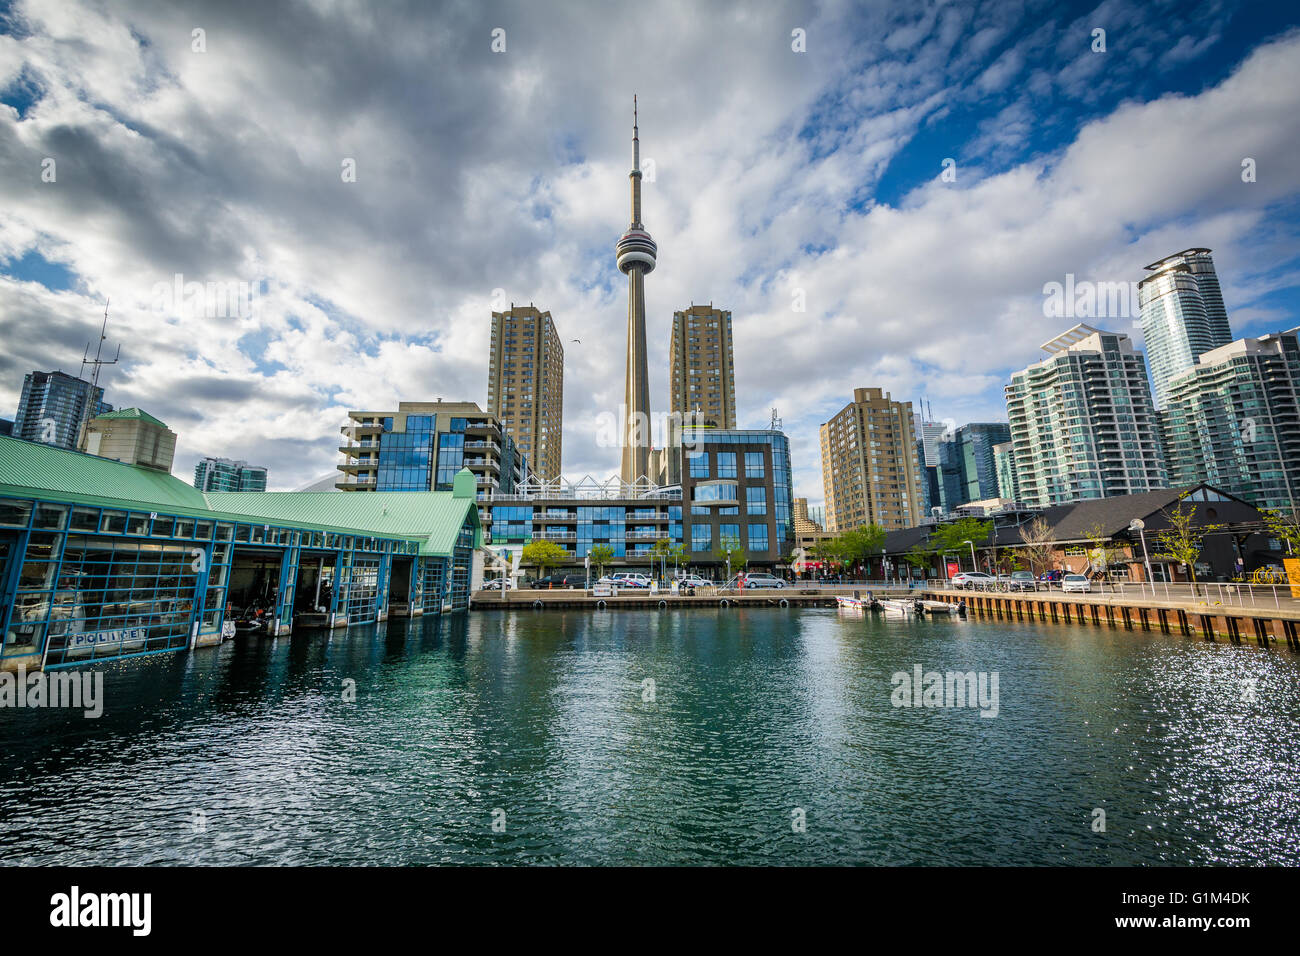 Buildings at the Harbourfront, in Toronto, Ontario. - Stock Image